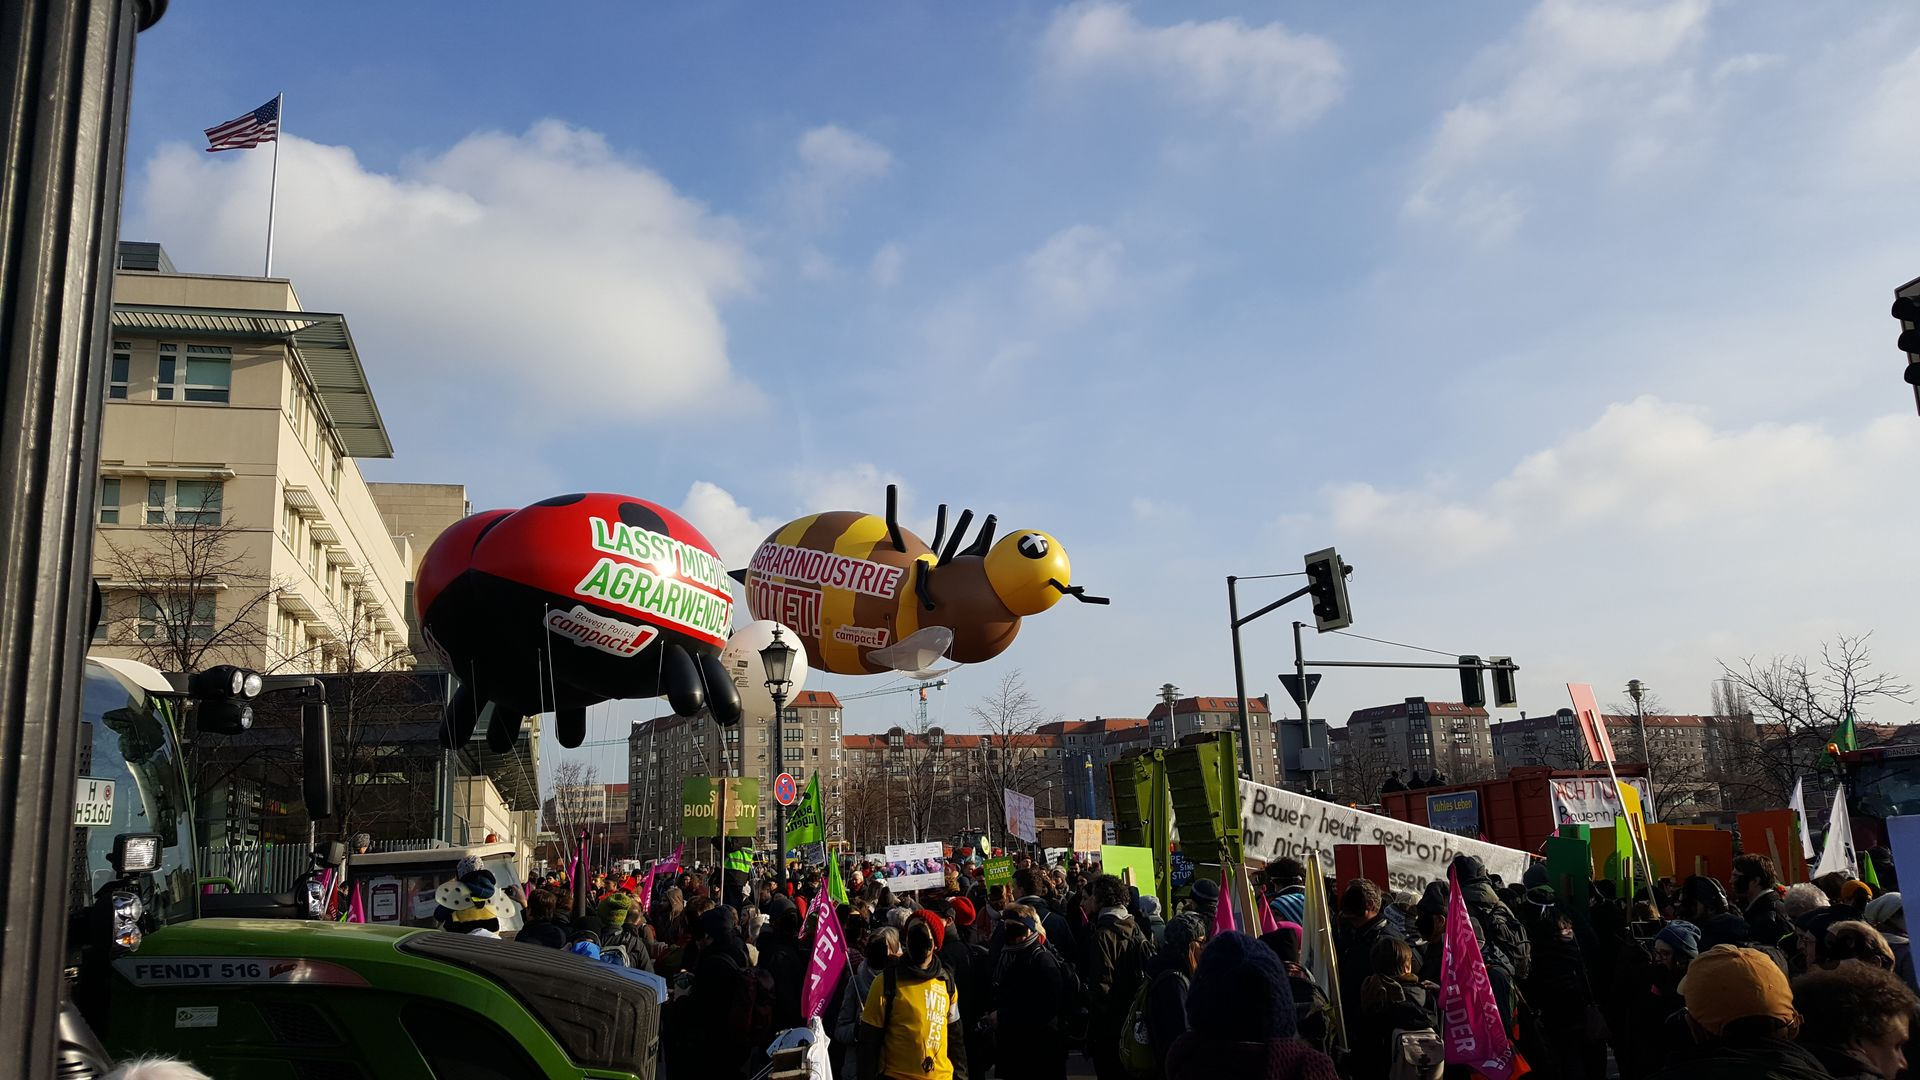 Das Foto zeigt einen Ausschnitt der Demo Wir haben es satt! in Berlin 2019 // The photo shows a part of the demo We are sick of it! in Berlin 2019